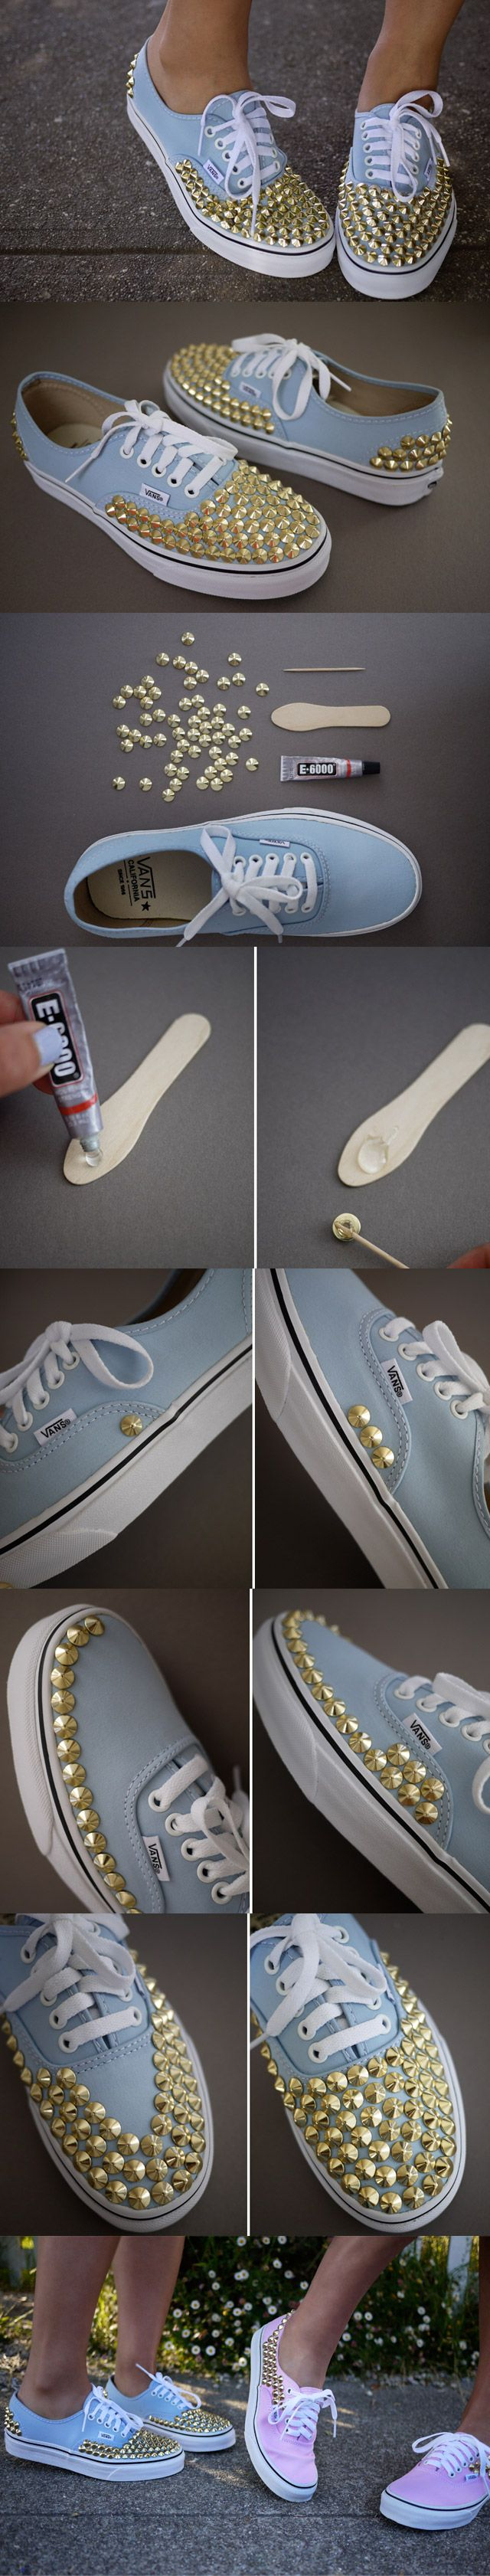 12 Interesting And Useful Dali DIY Ideas, DIY Studded Sneakers